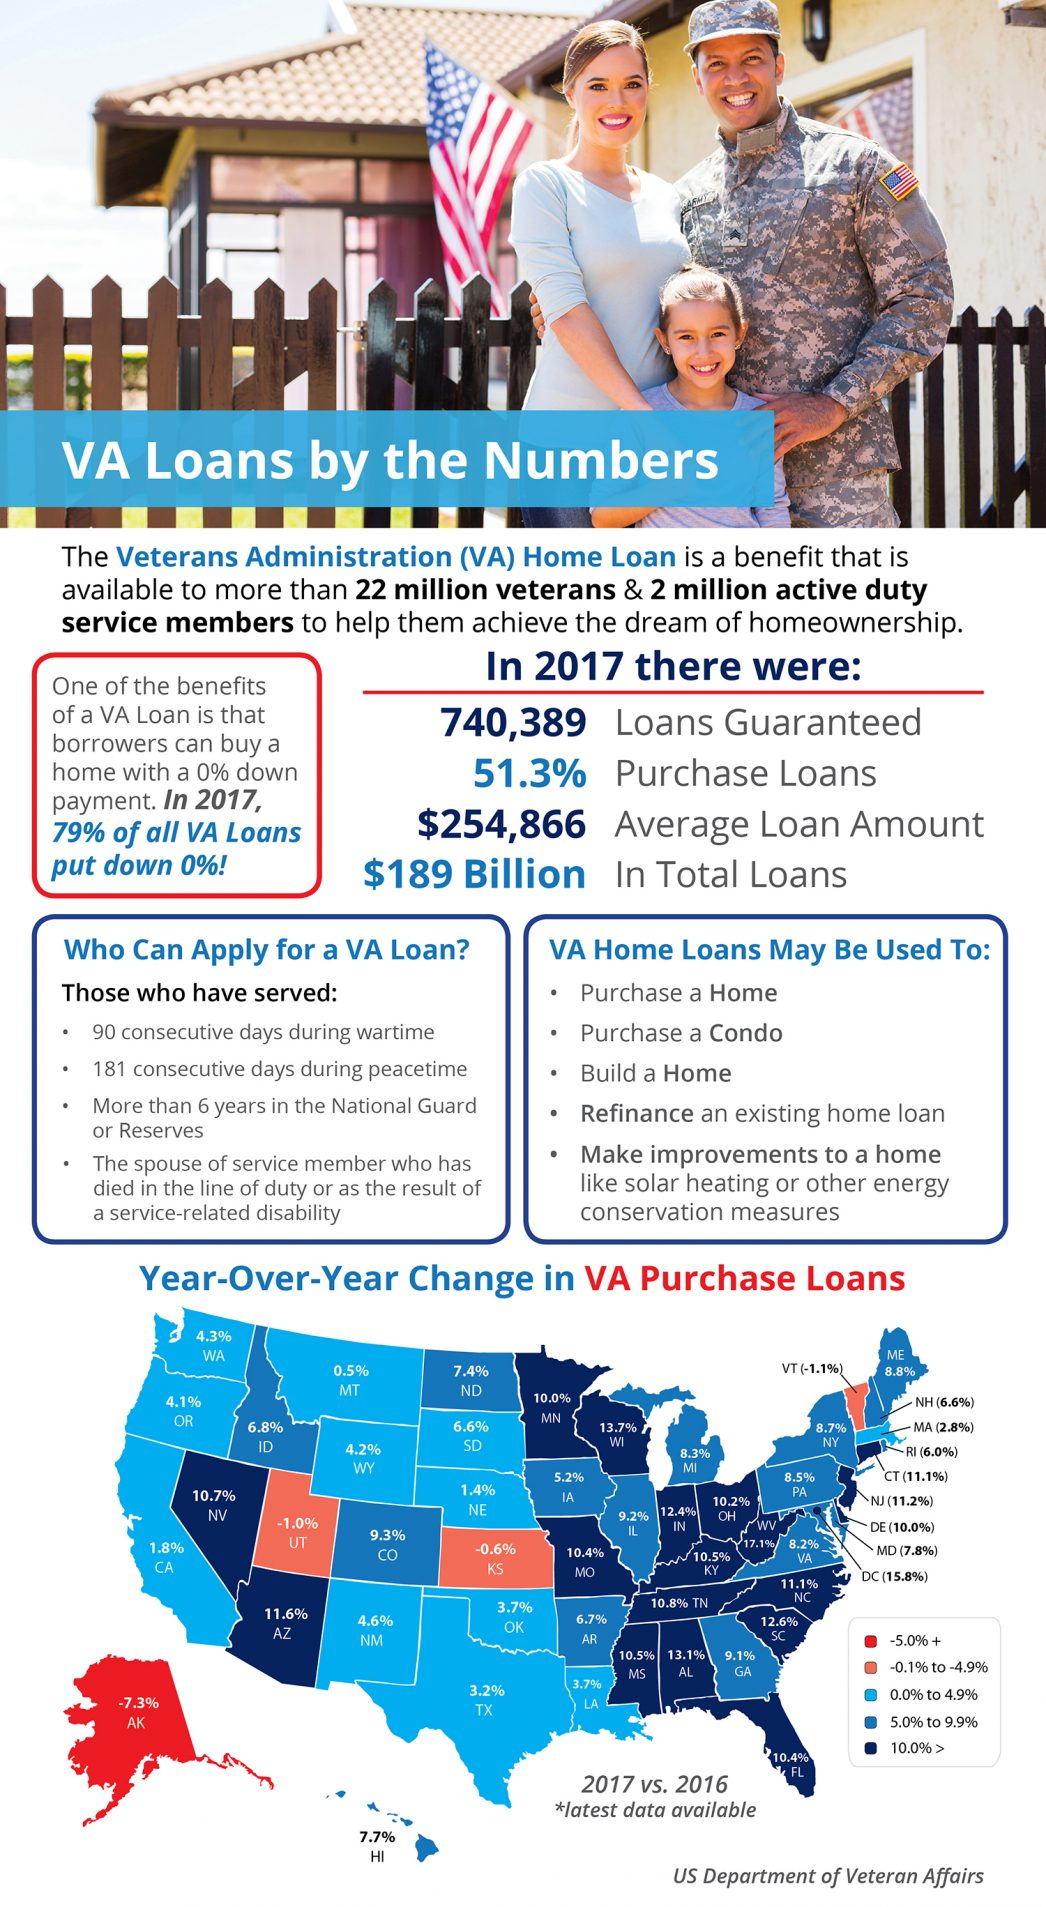 VA Home Loans by the Numbers.jpg